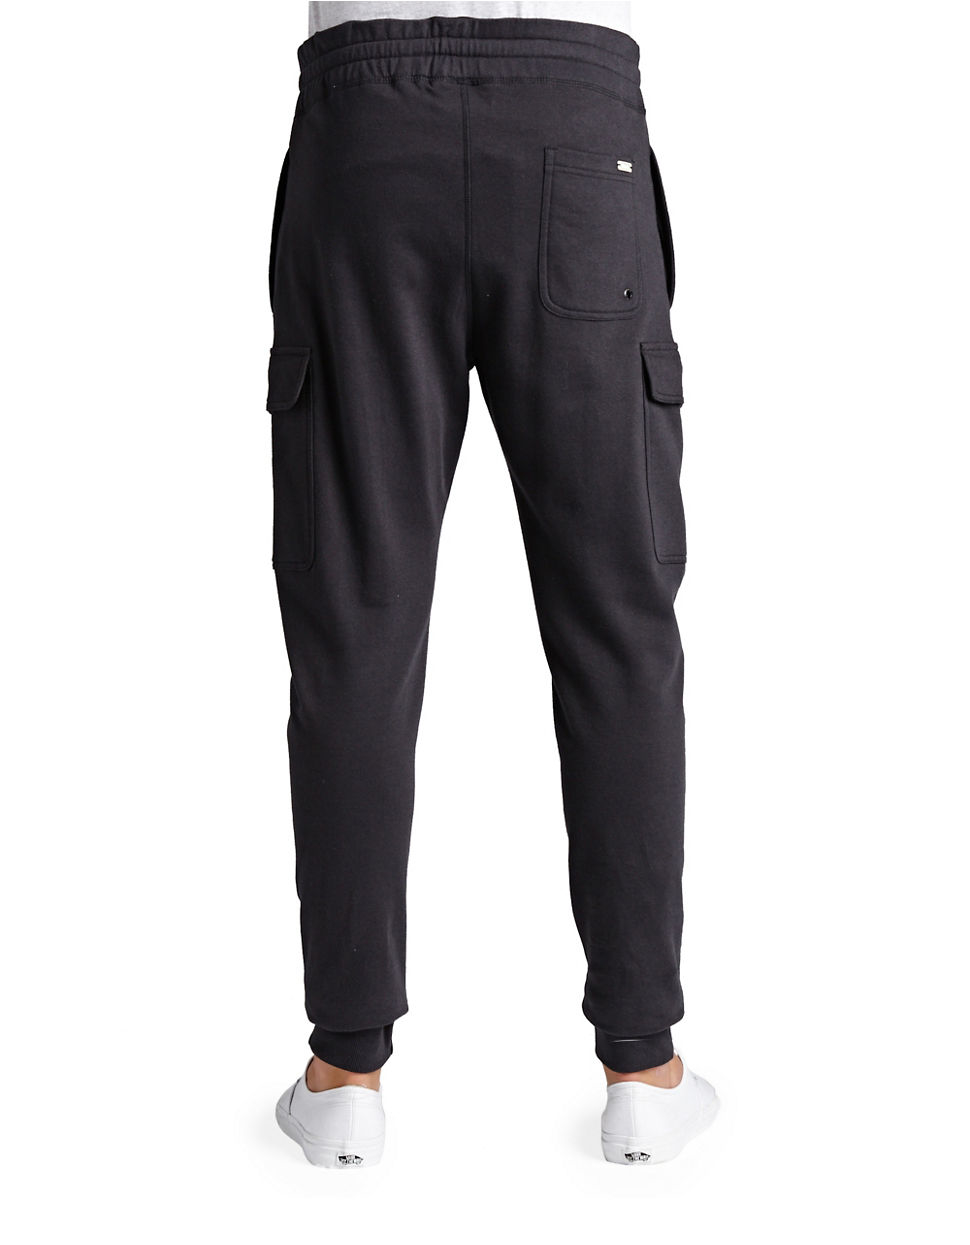 Awesome 24 New Jogger Pants For Women Bench | Sobatapk.com